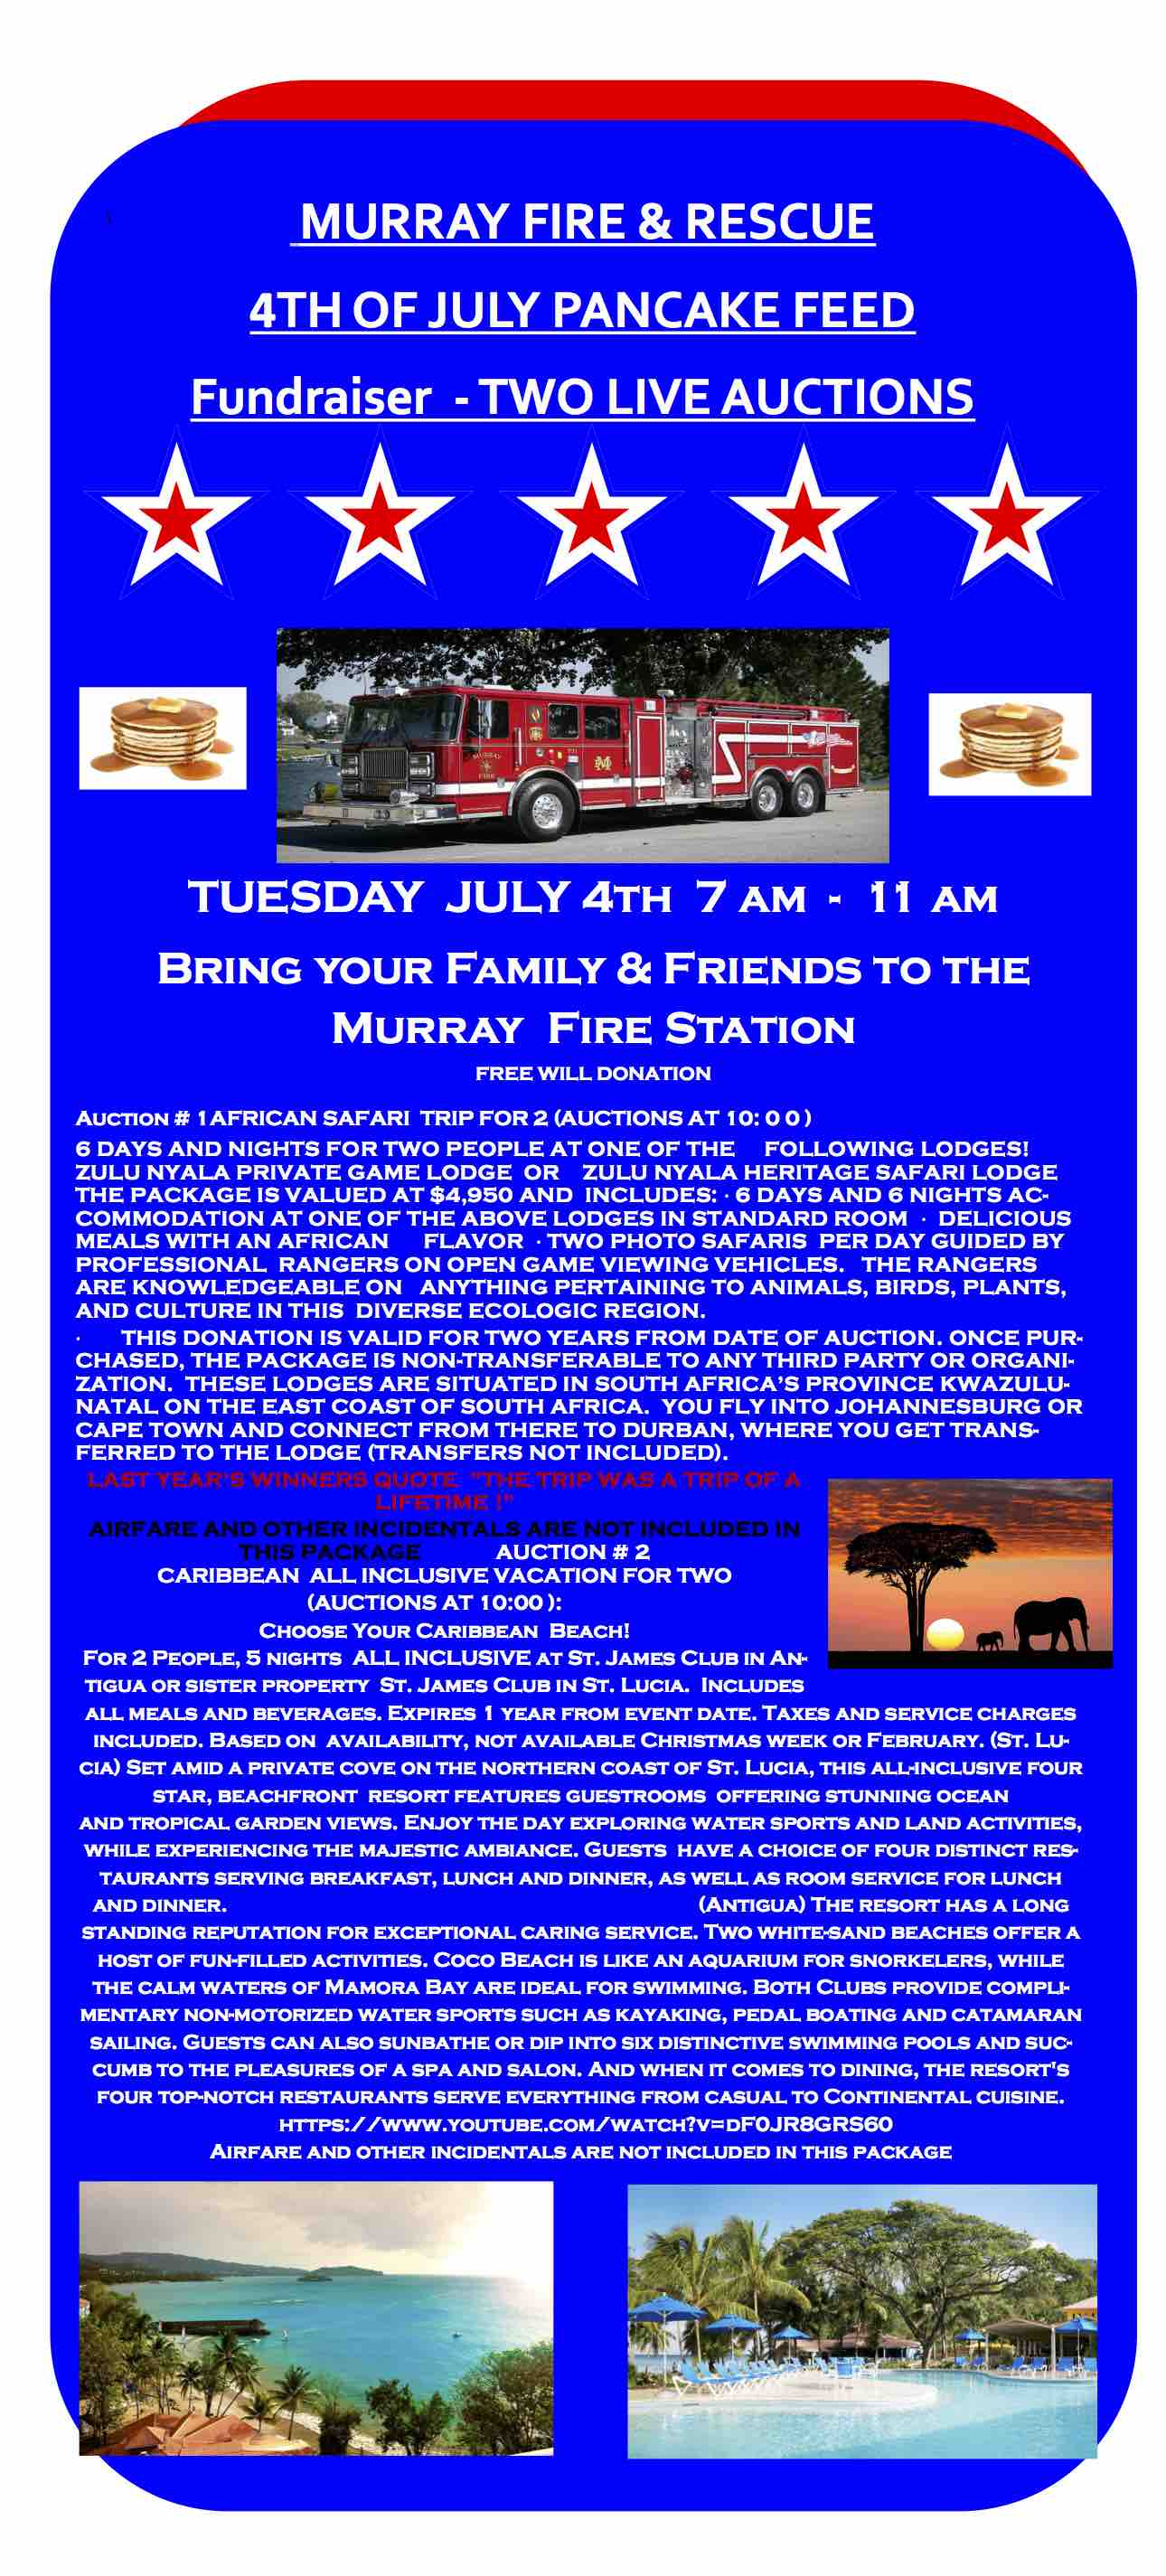 2017 06 14 MVFD PANCAKES AUCTION